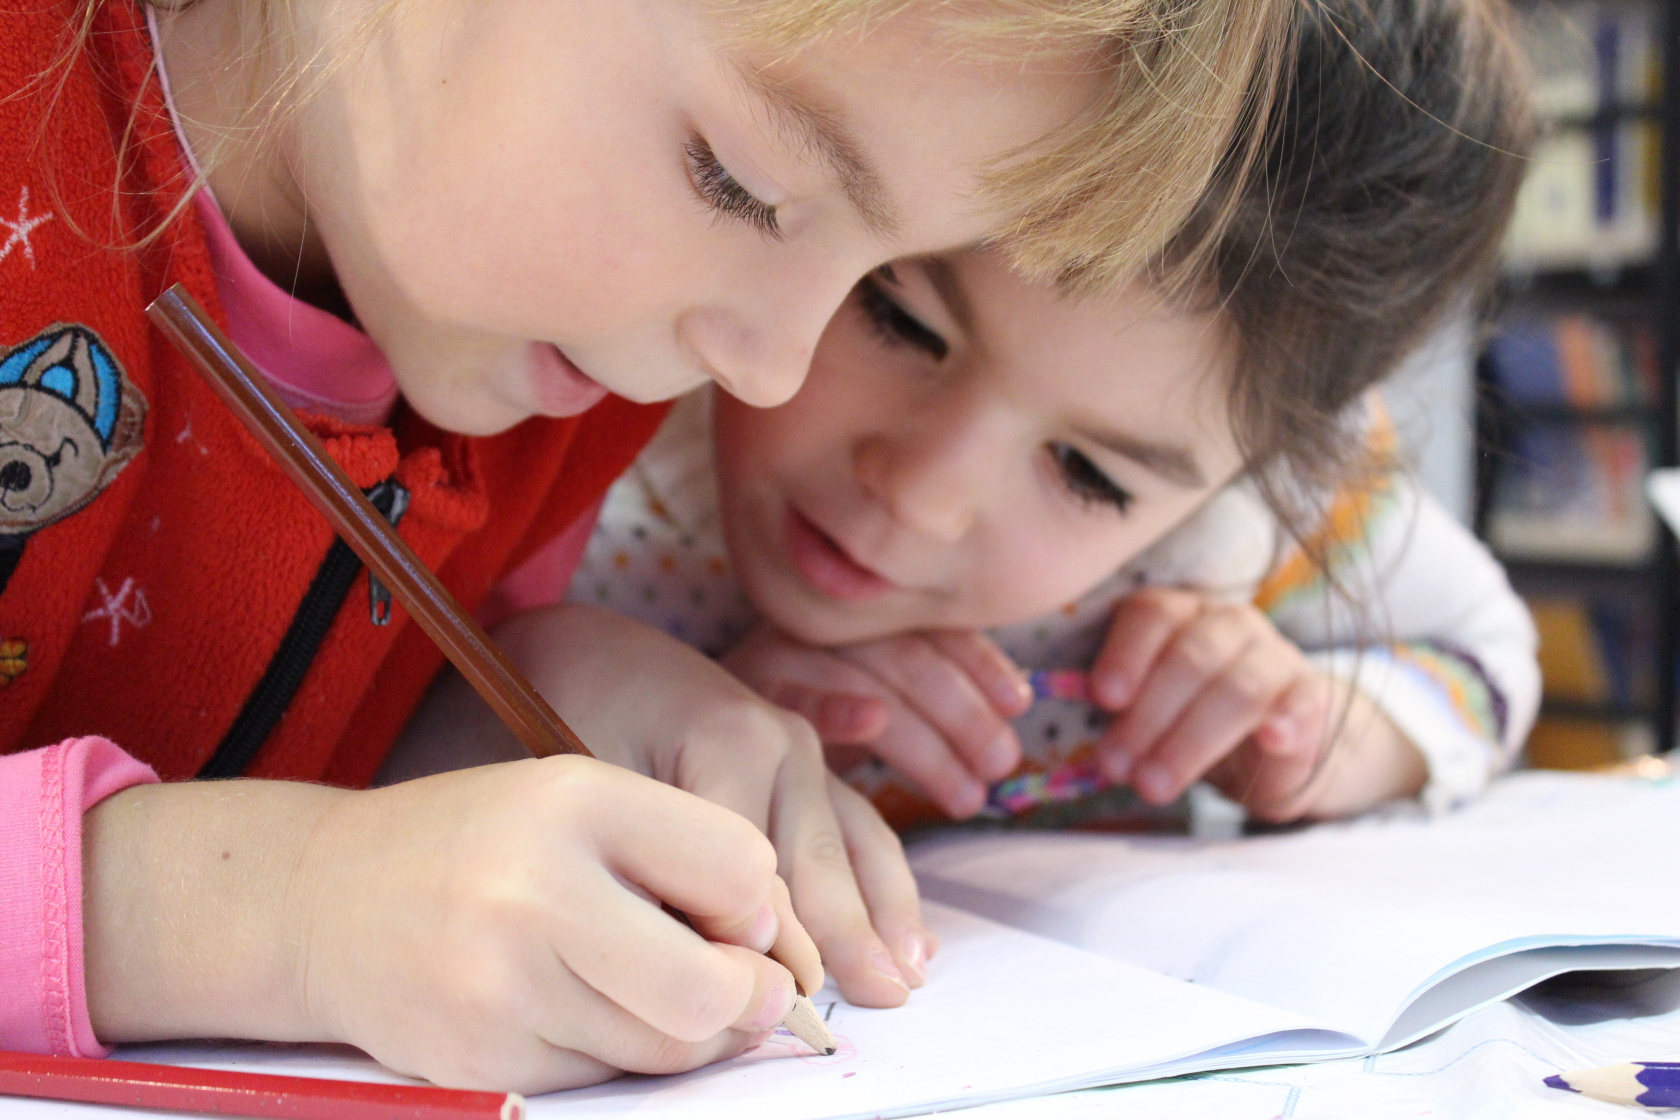 Two young girls drawing on paper